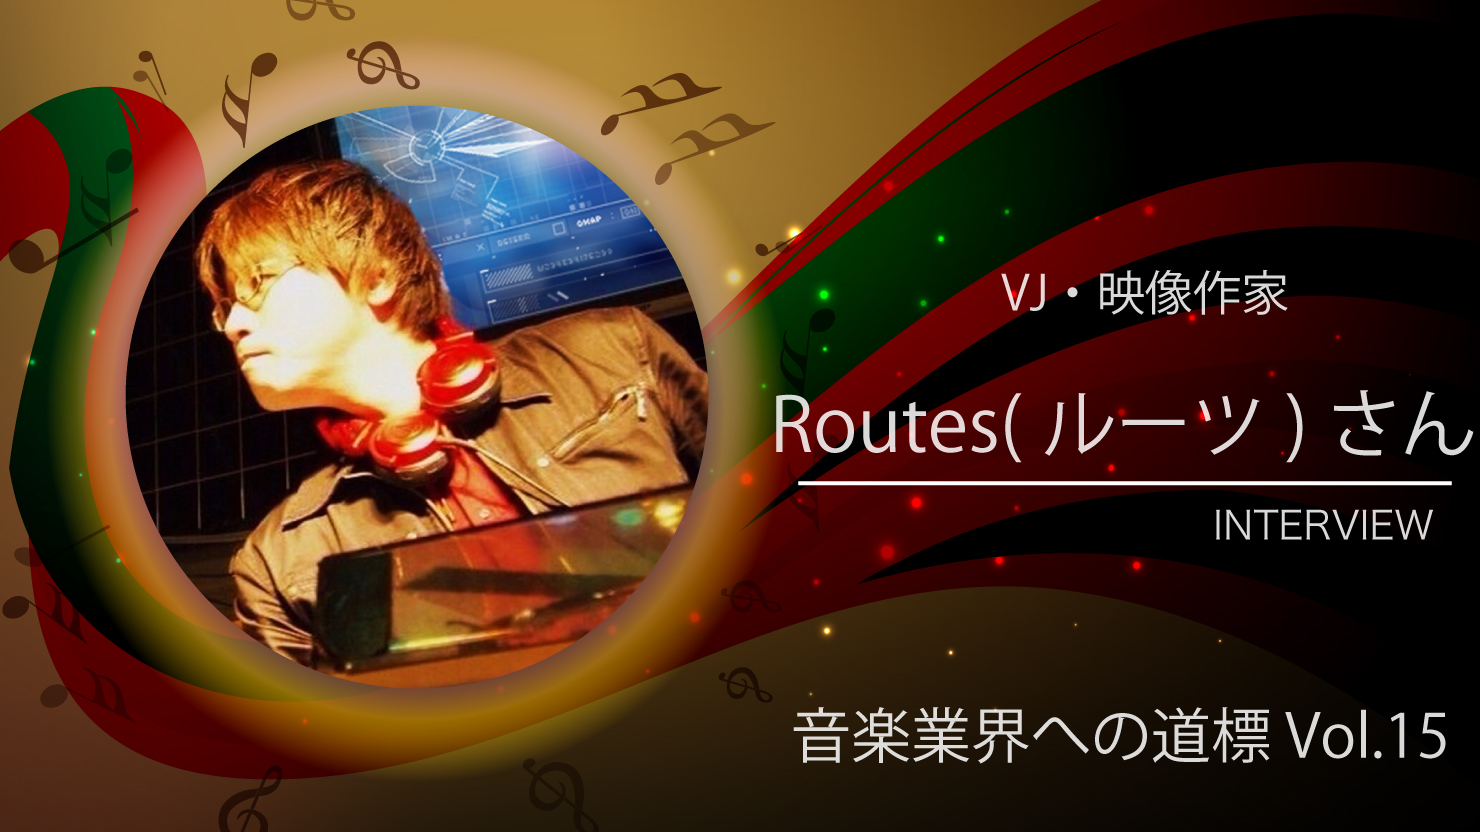 Routesprofile